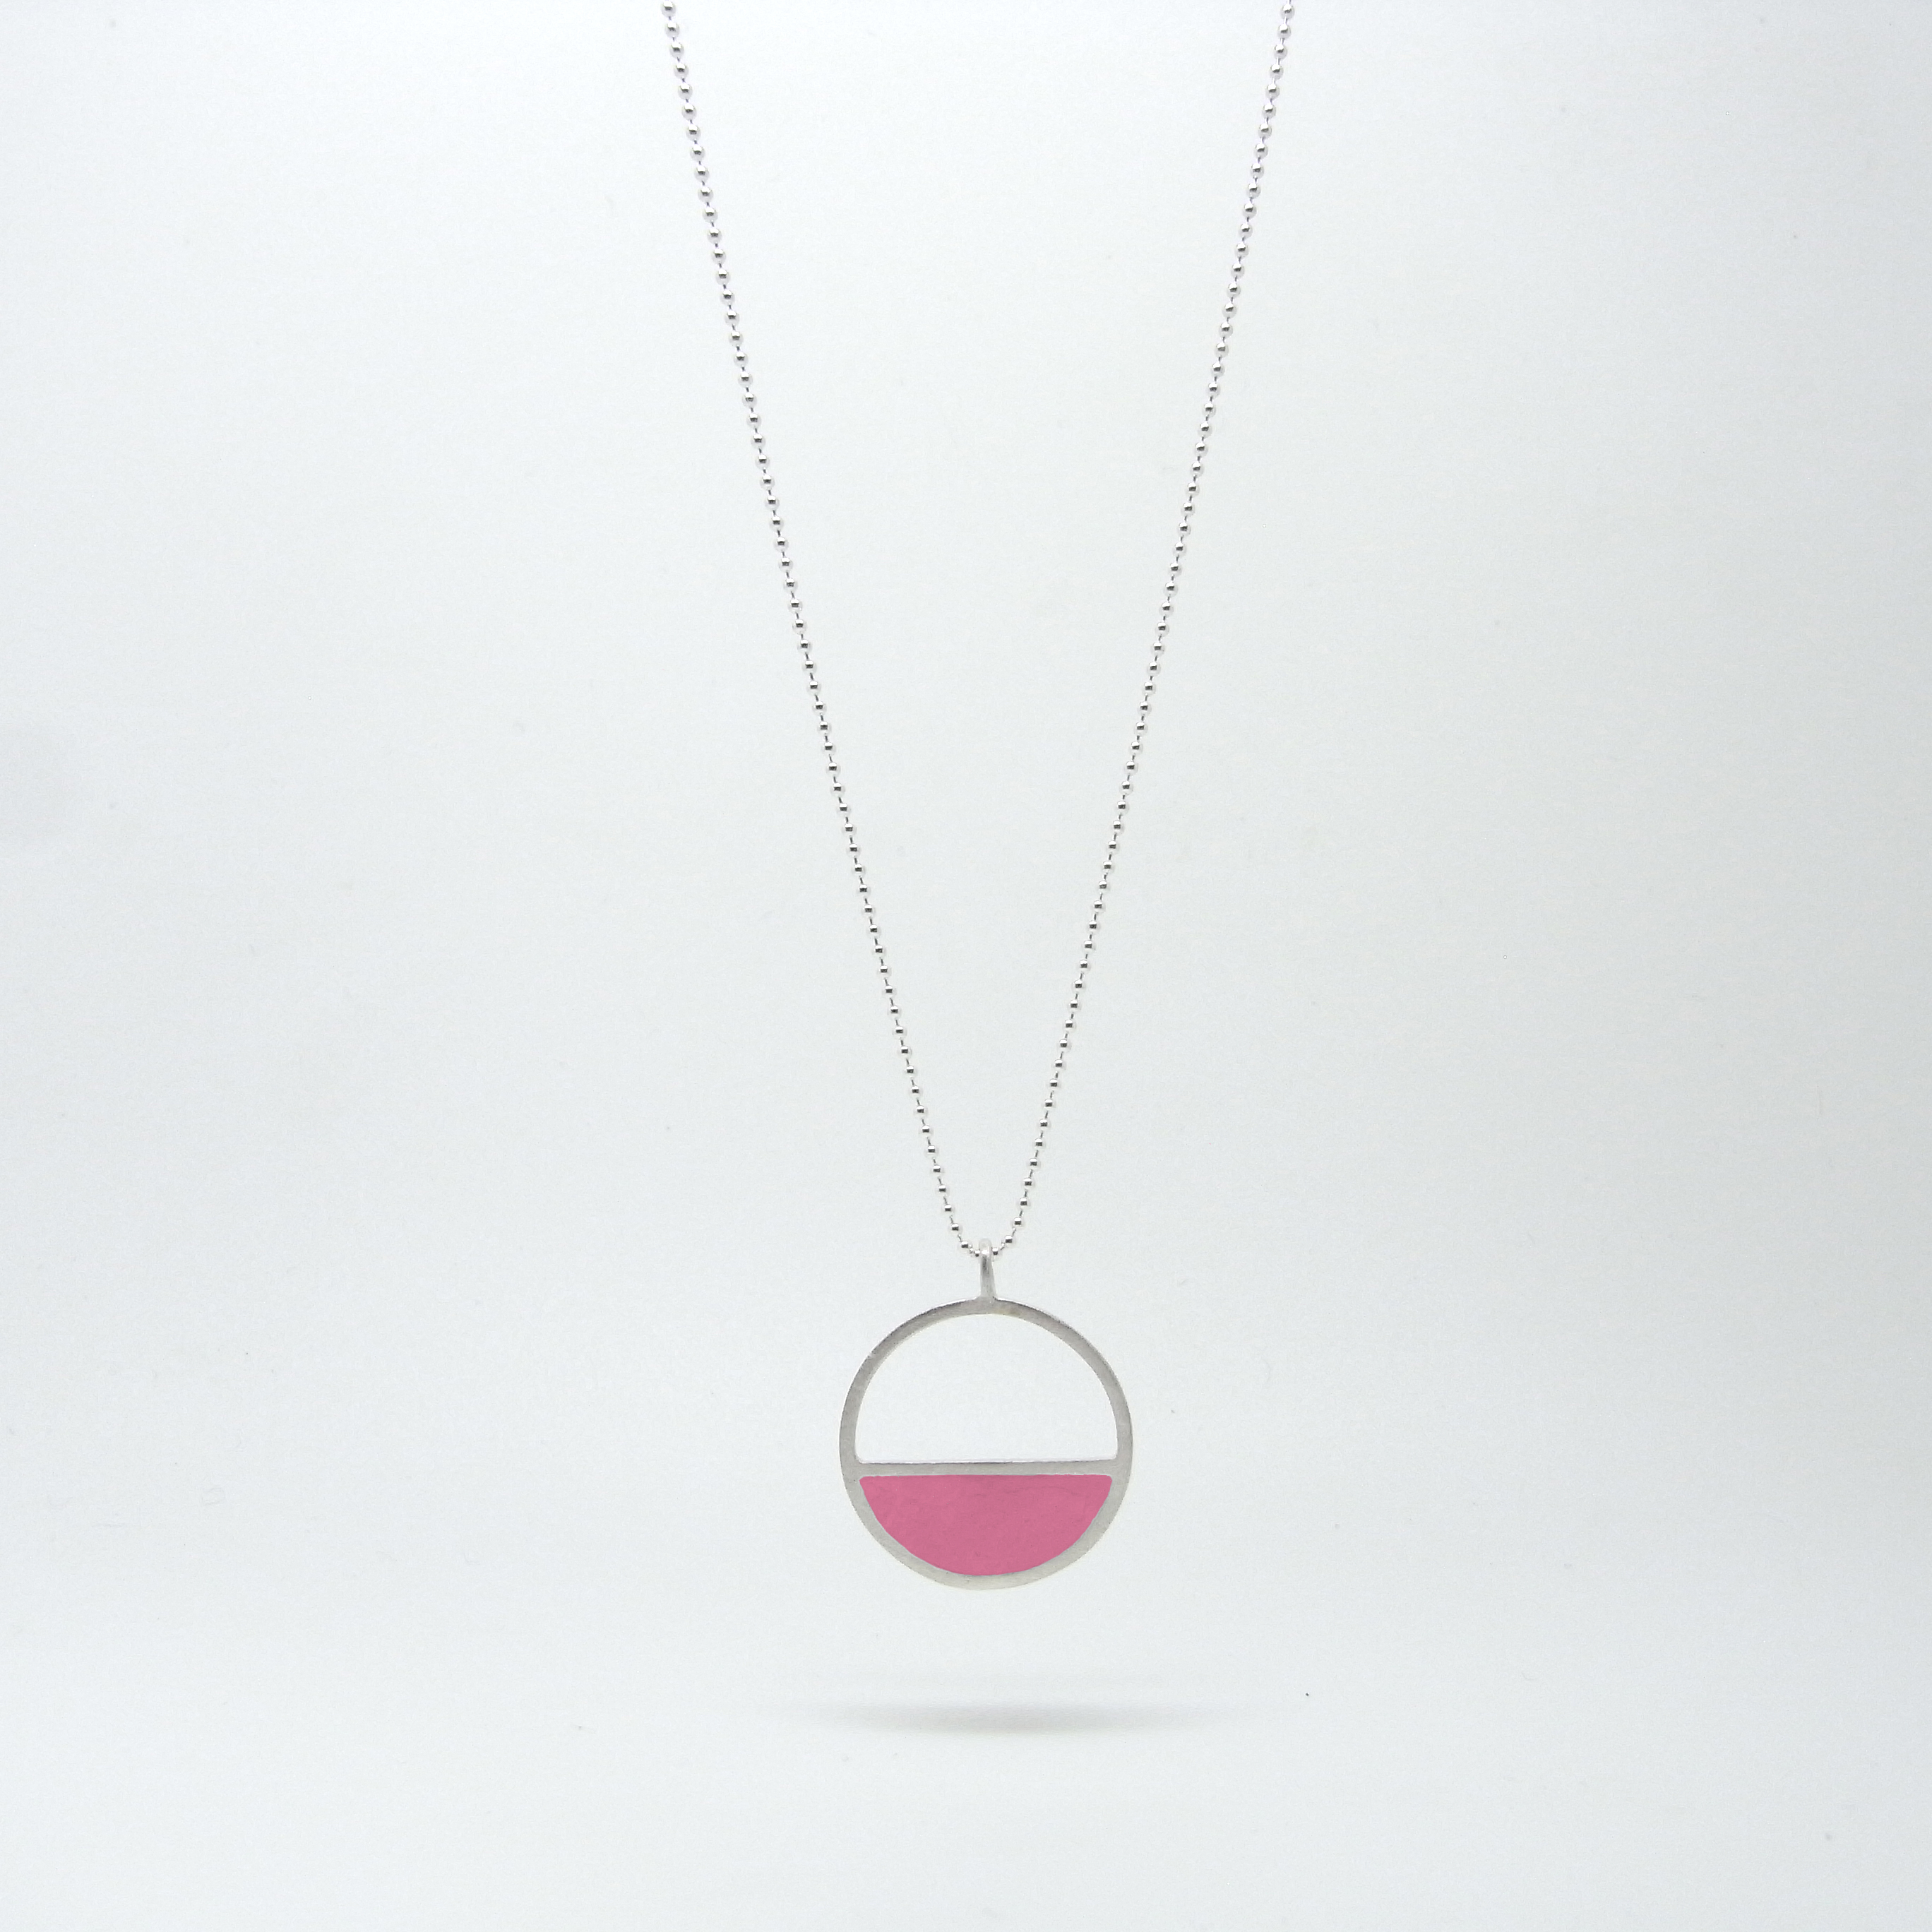 SALE - Semi Circle Necklace Pink